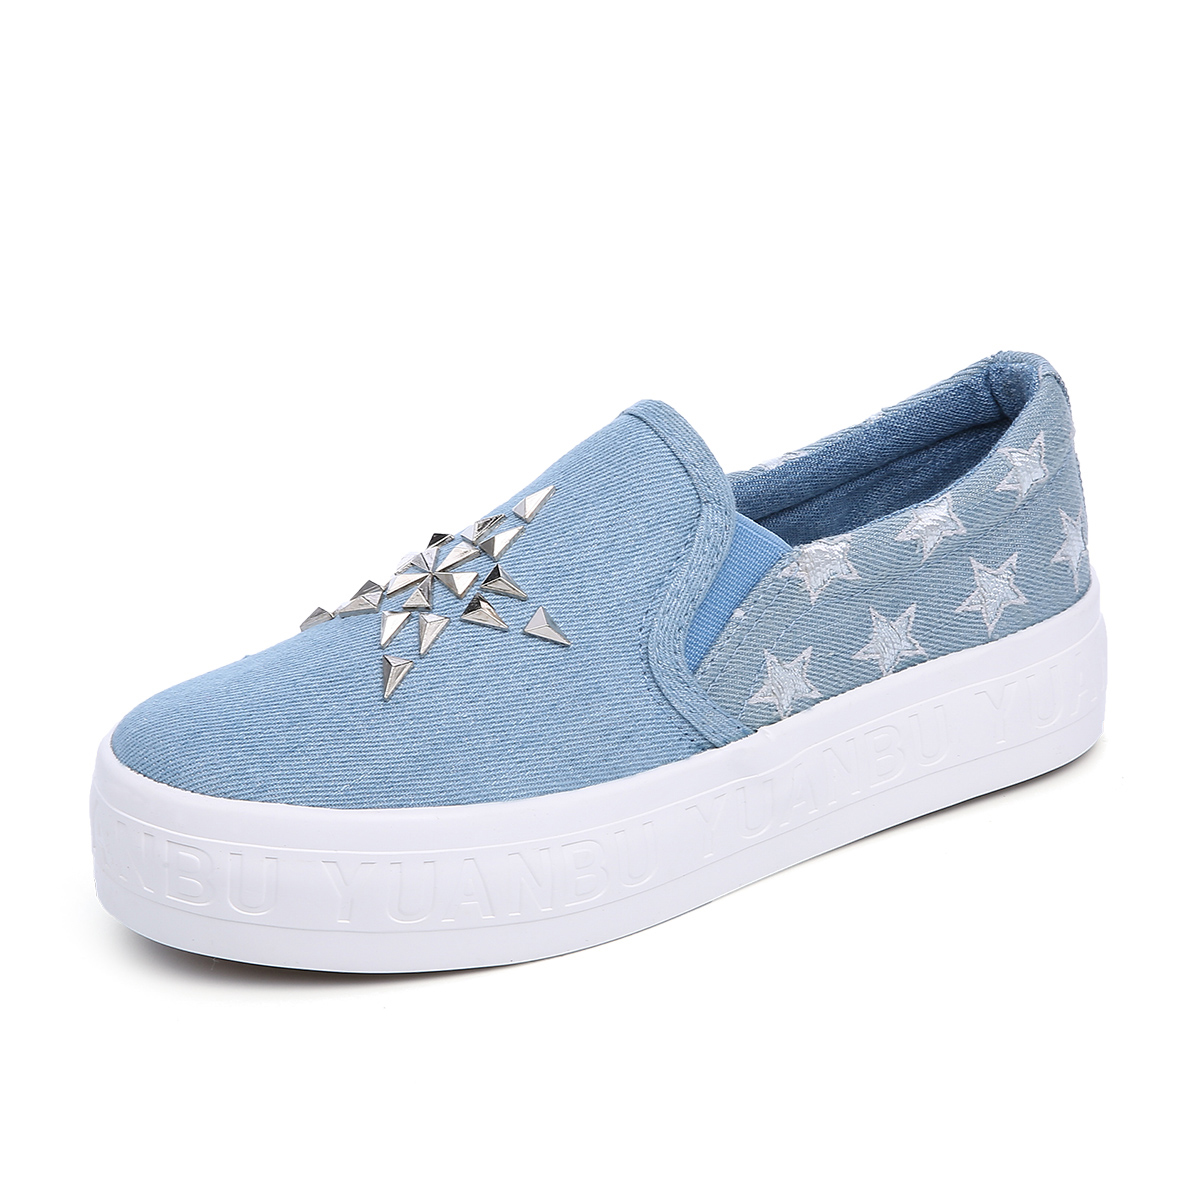 LuxuryBrand Shoes 2018 Summer Fashion Trend, Canvas Shoes, Foot Protection, Fresh And Refined Womens Shoes.